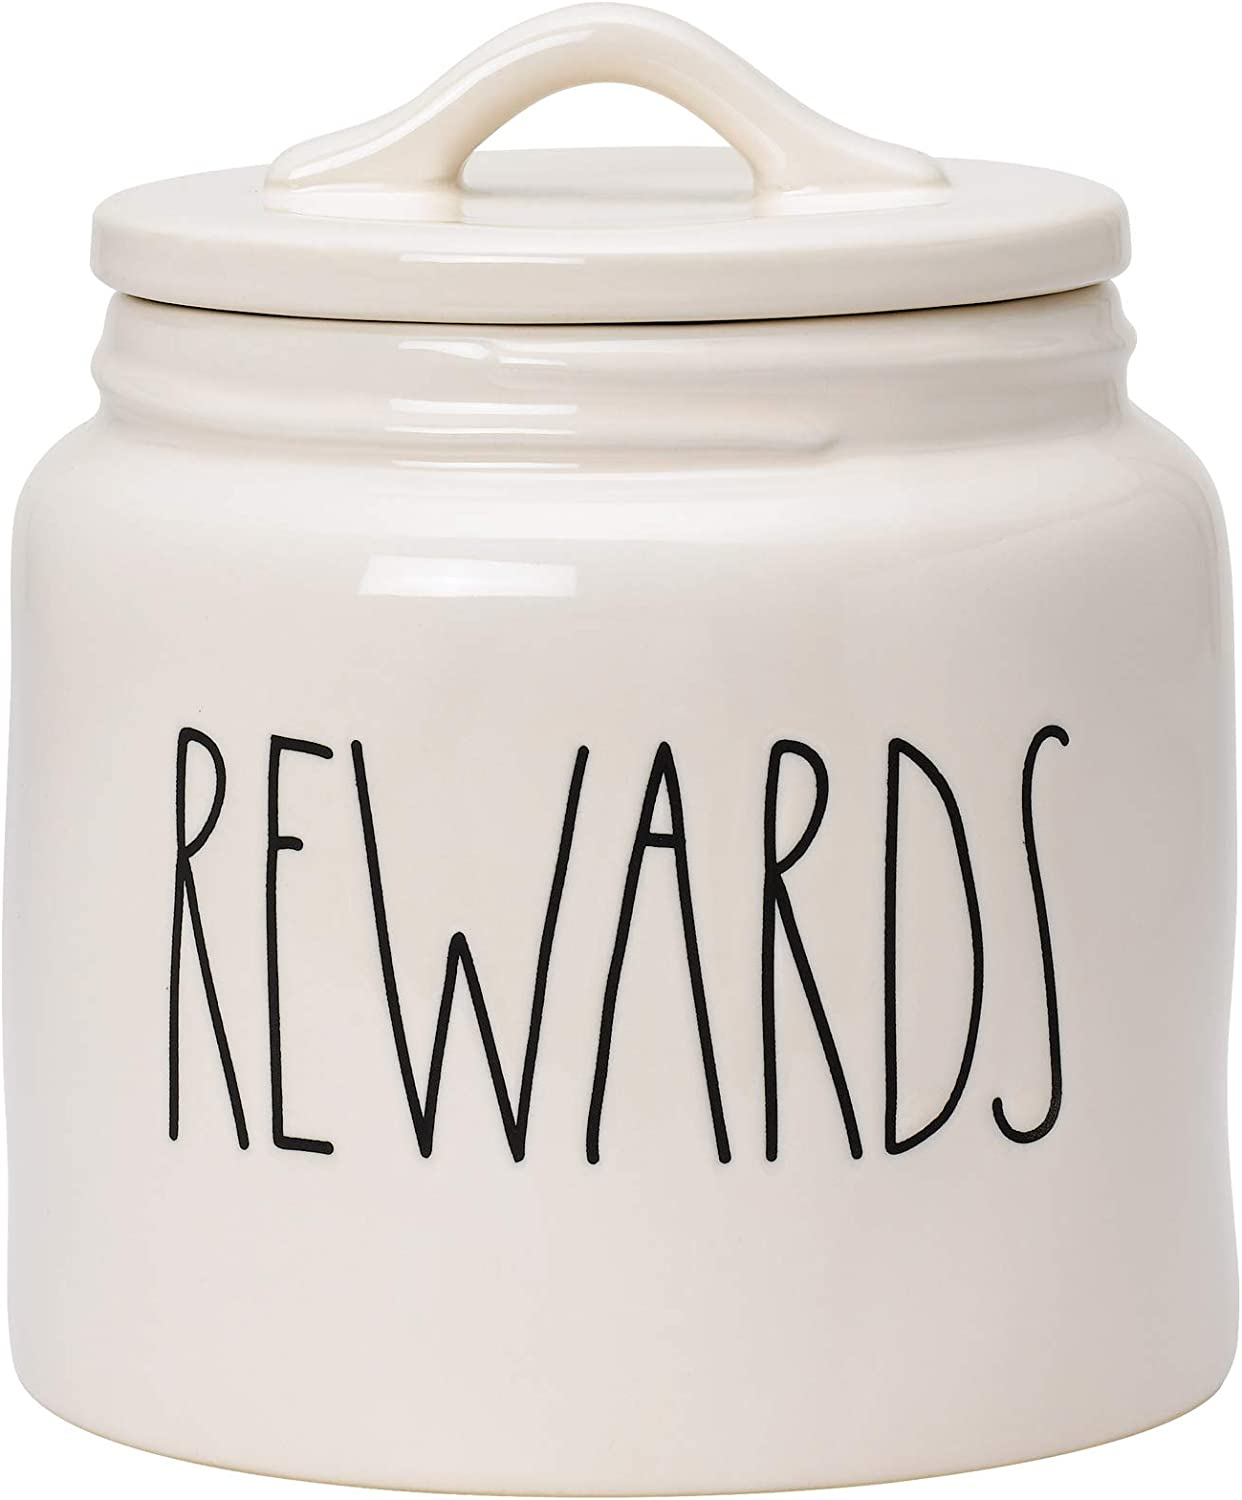 Rae Dunn cookie jar Rae Dunn canister Snack Canister. ceramic rewards Rewards Food Container for Cookies or Dog Biscuits